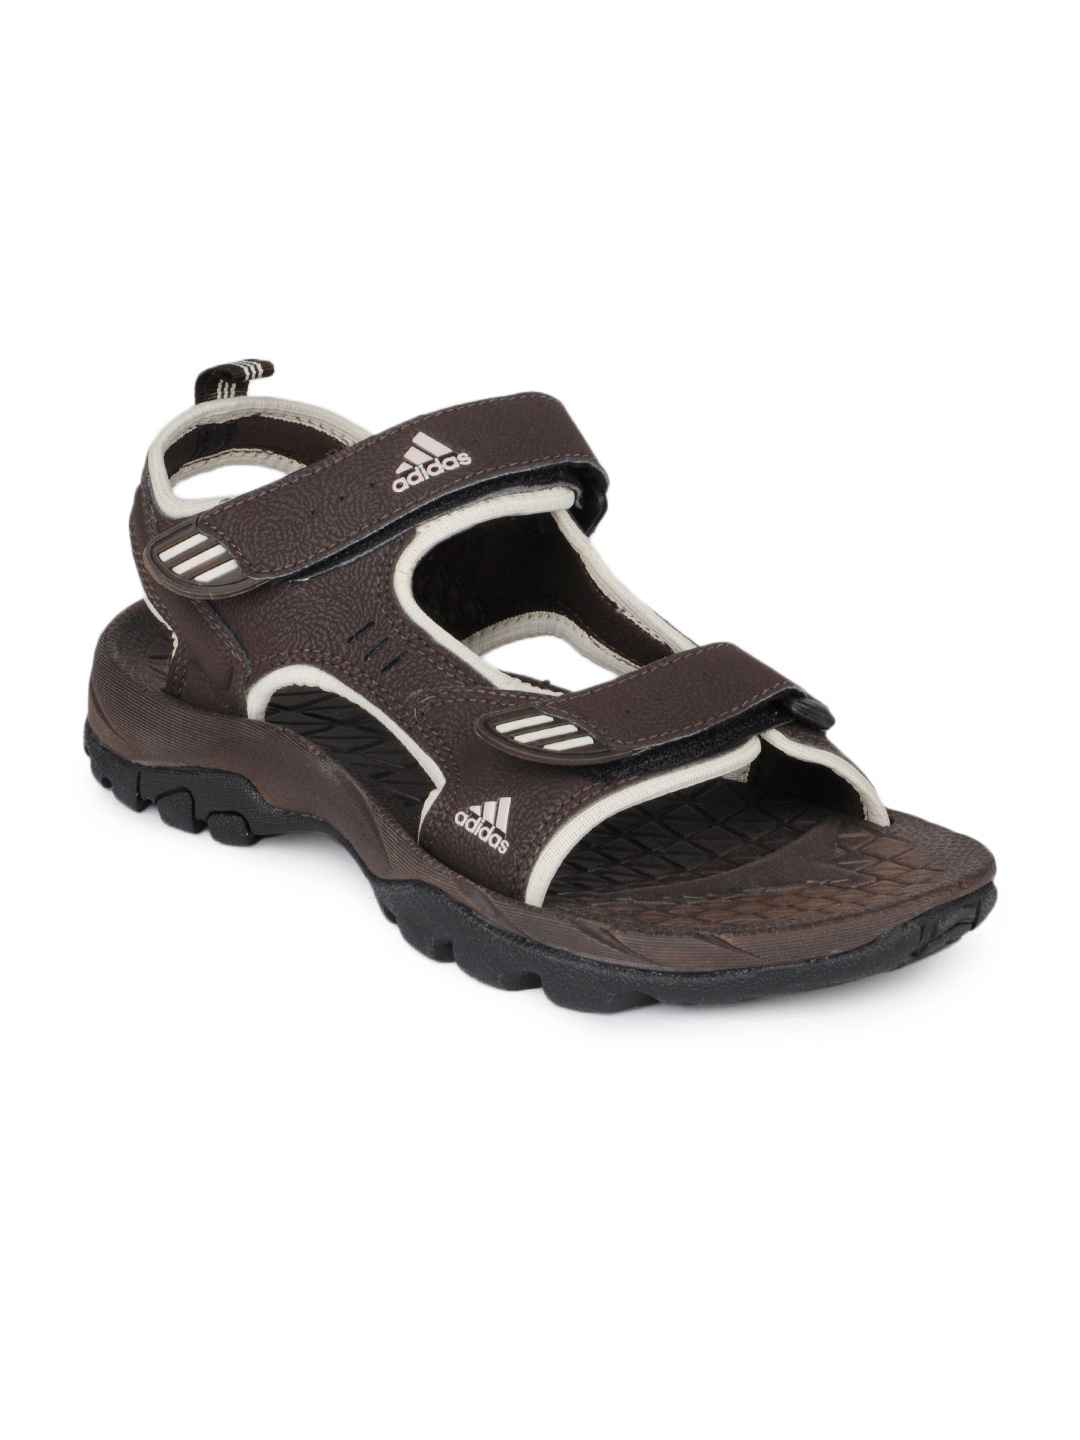 Adidas Men Brown Sandals